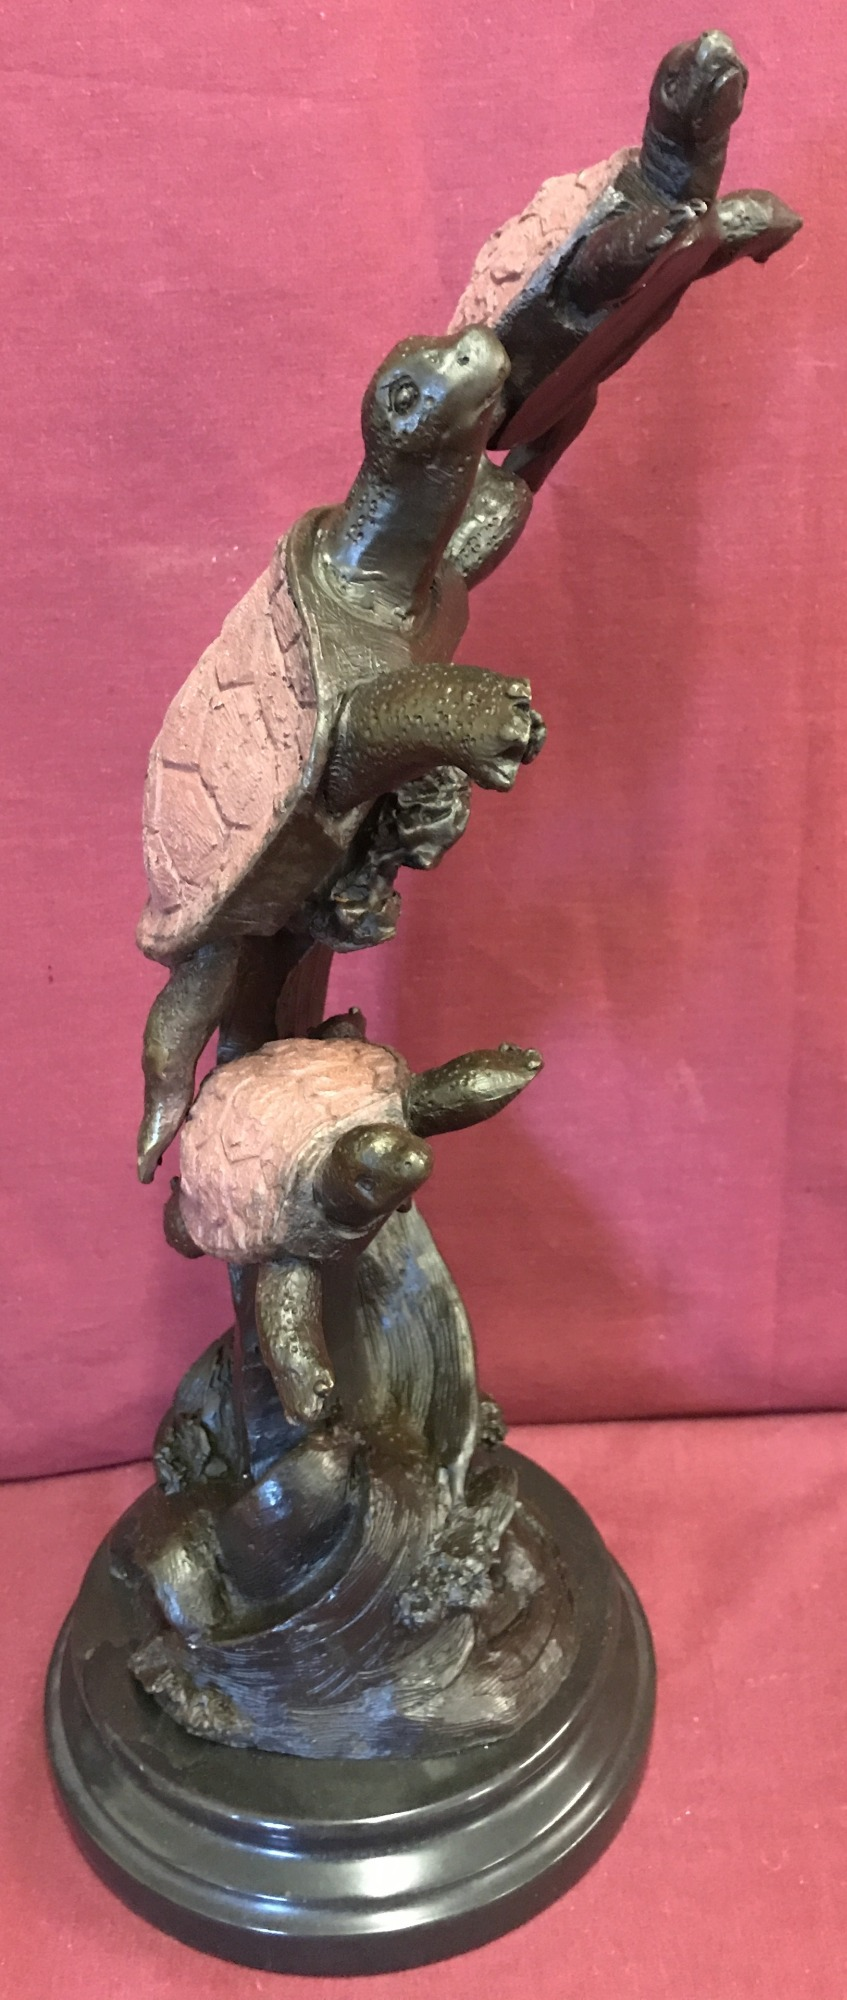 Lot 96 - A large bronze figurine of swimming turtles, mounted on circular marble plinth.